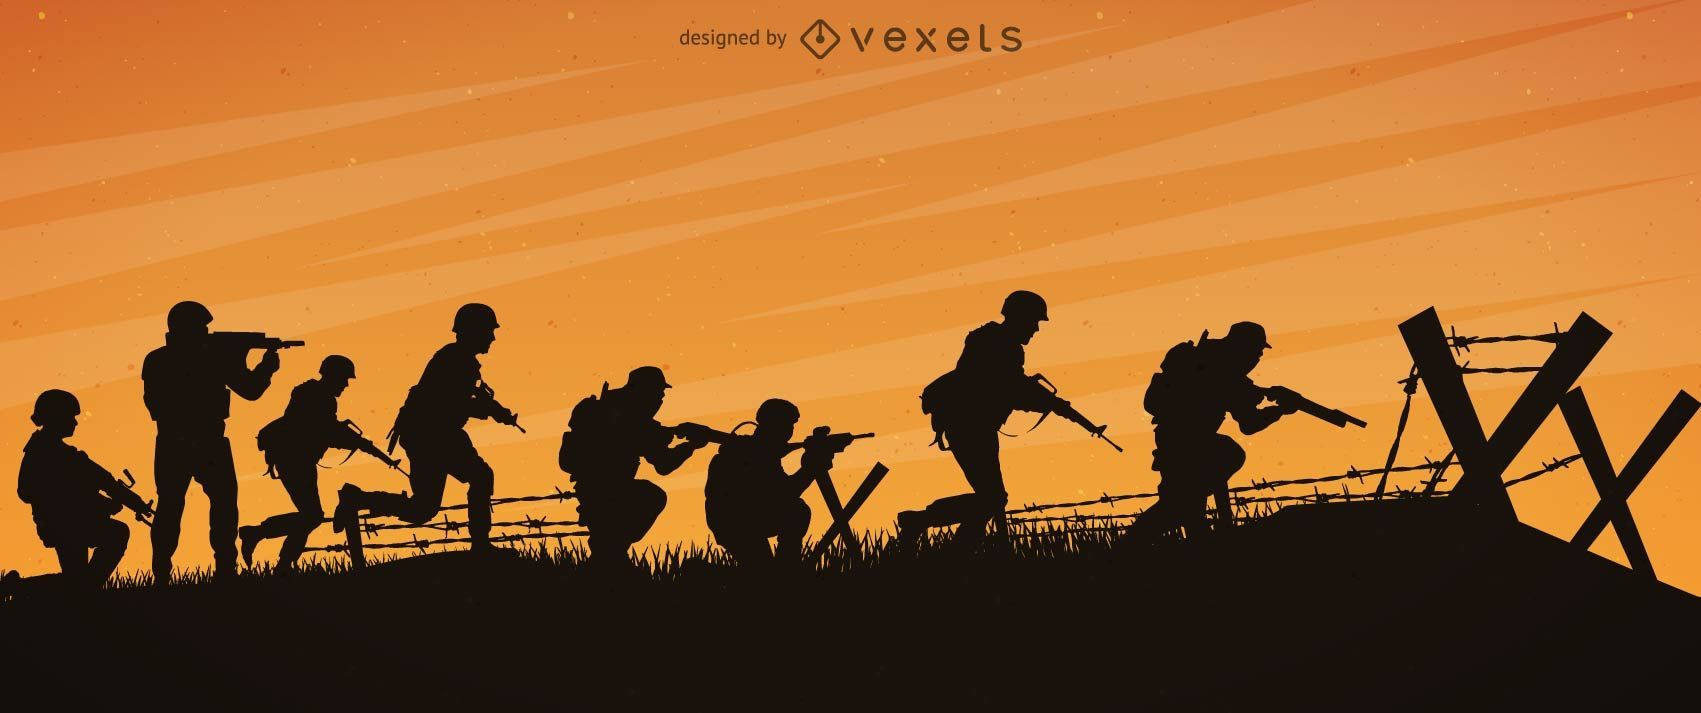 Soldiers war front silhouette design